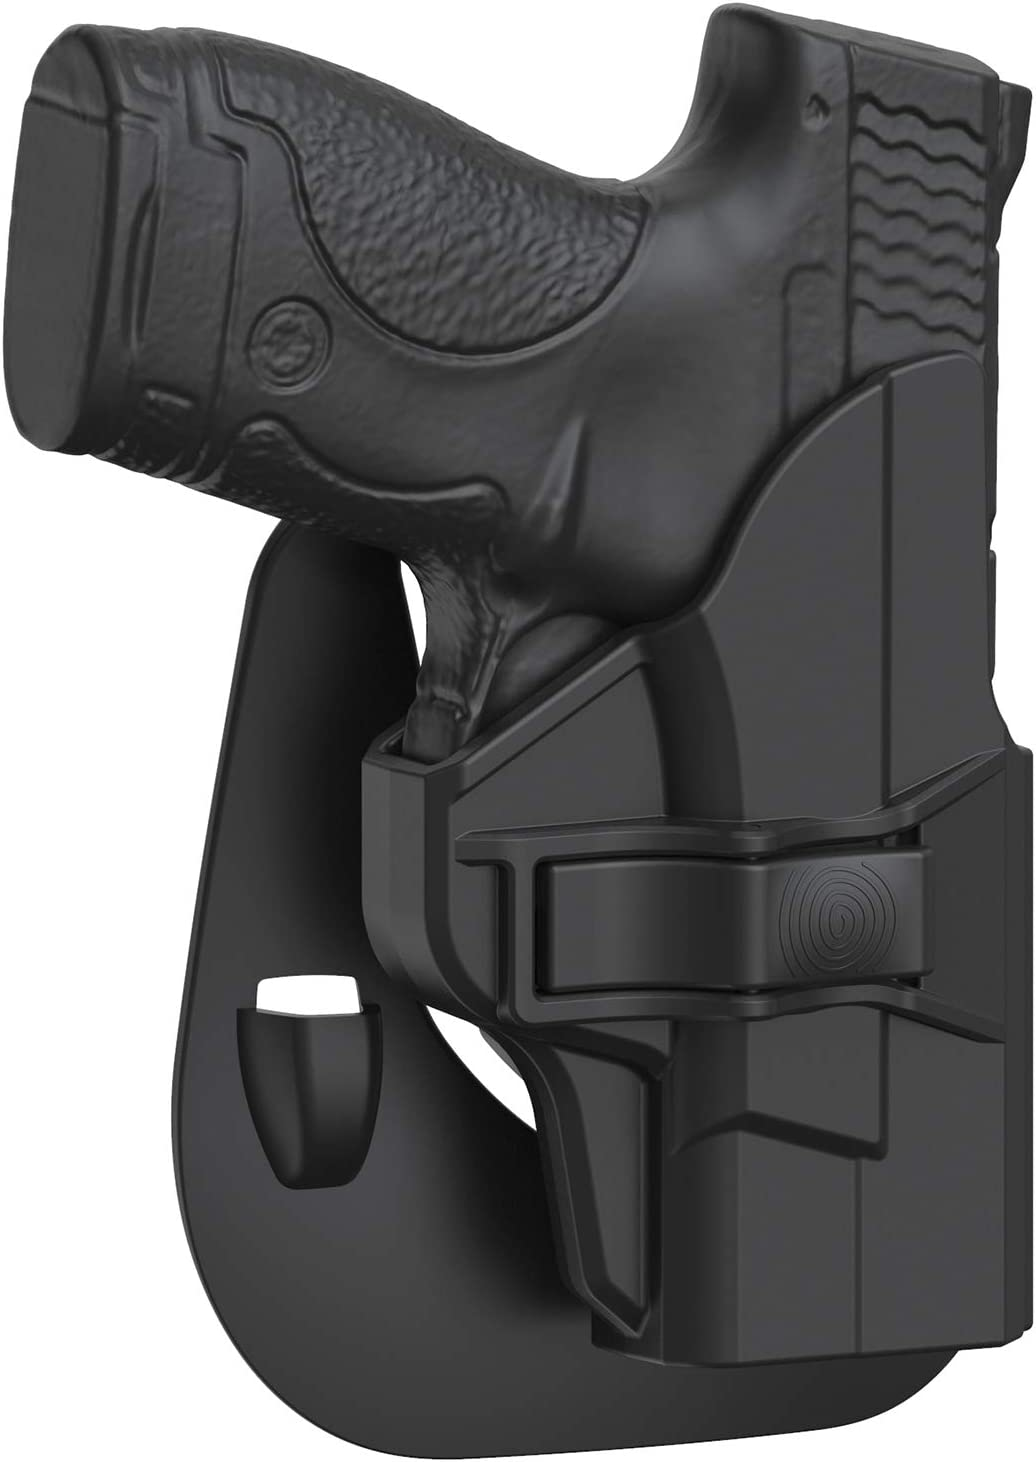 Tulsa Mall MP Shield Tucson Mall 9mm Holster OWB fit Paddle Smith 3.1